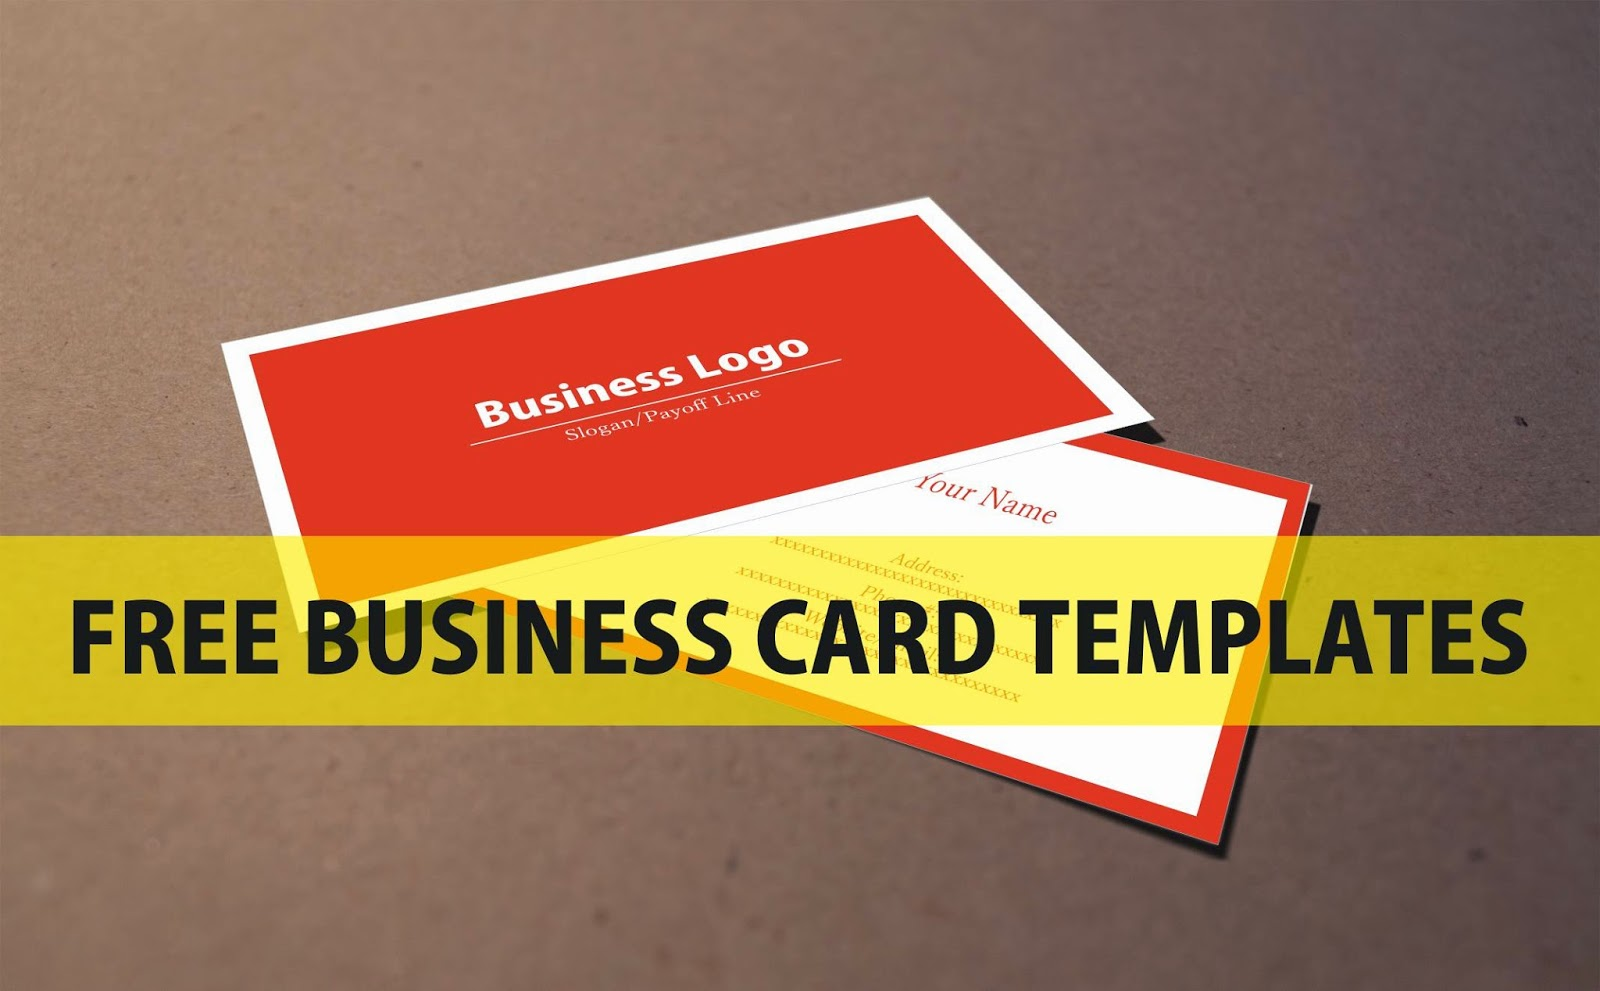 templates for business cards free - Roberto.mattni.co